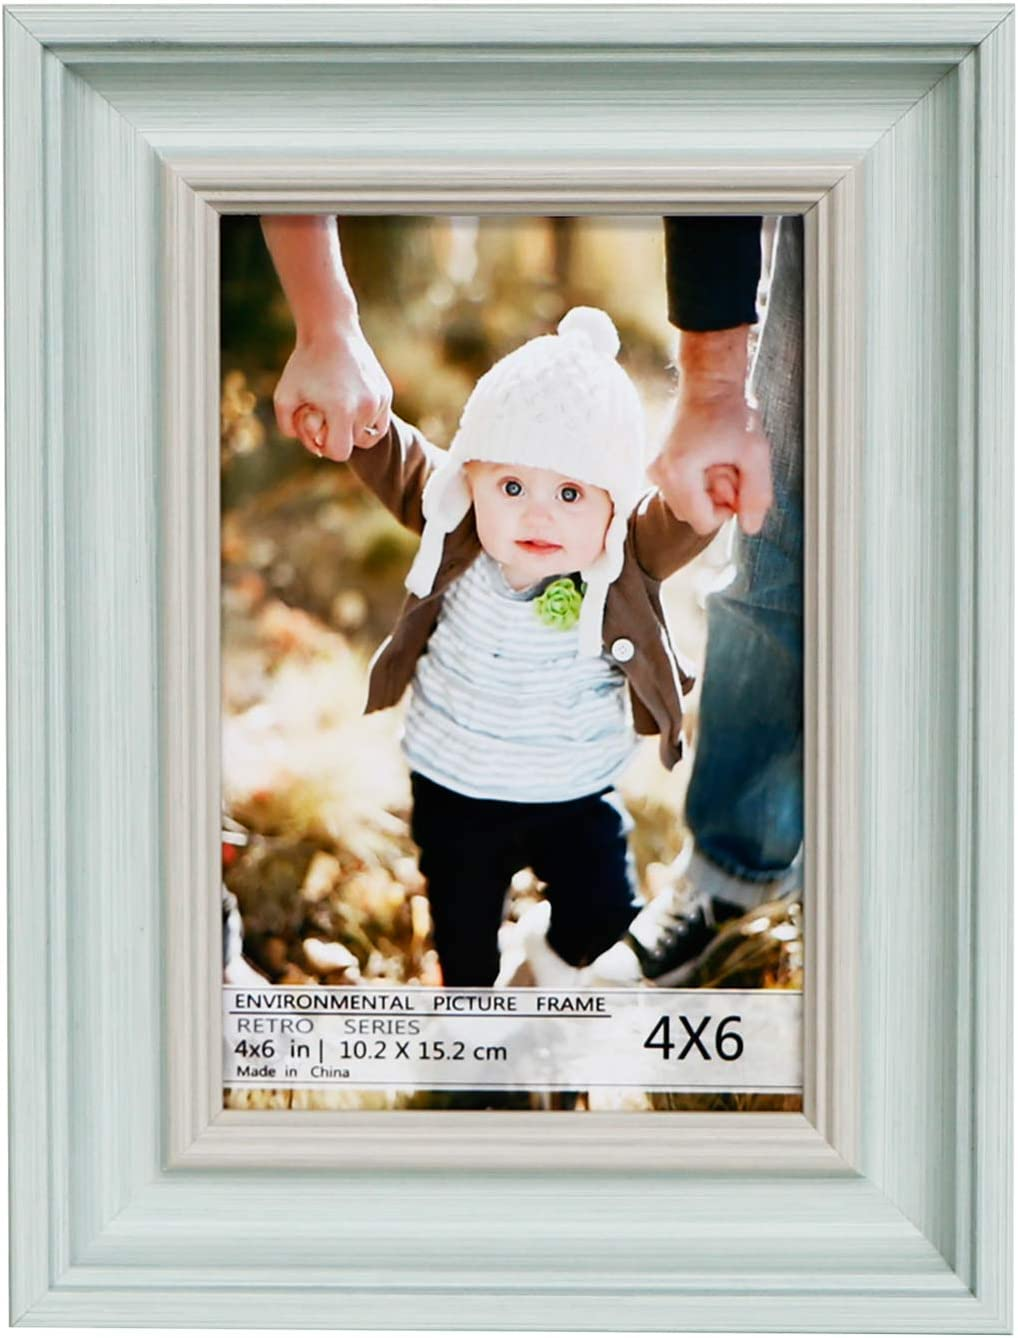 Juwide 4x6 Picture Frames,Light Blue Photo Frame Made of Solid Wood High Definition Glass for Table Top and Wall mounting